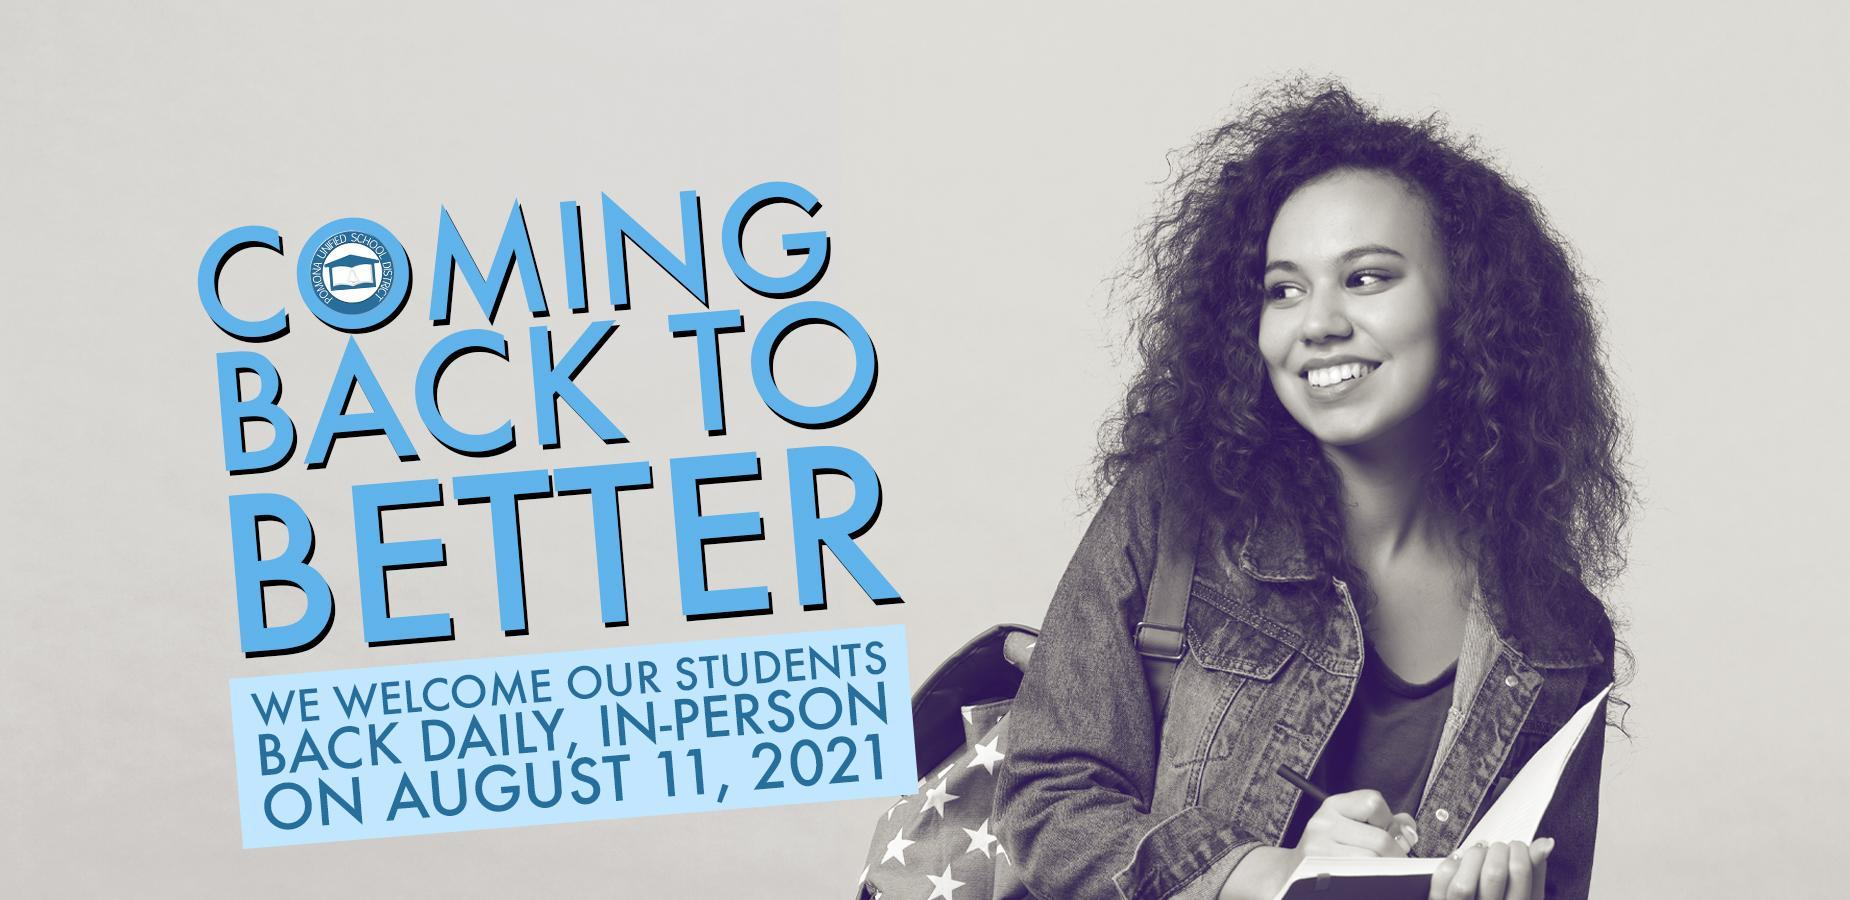 Coming Back to Better - We welcome our students back daily, in-person on August 11, 2021